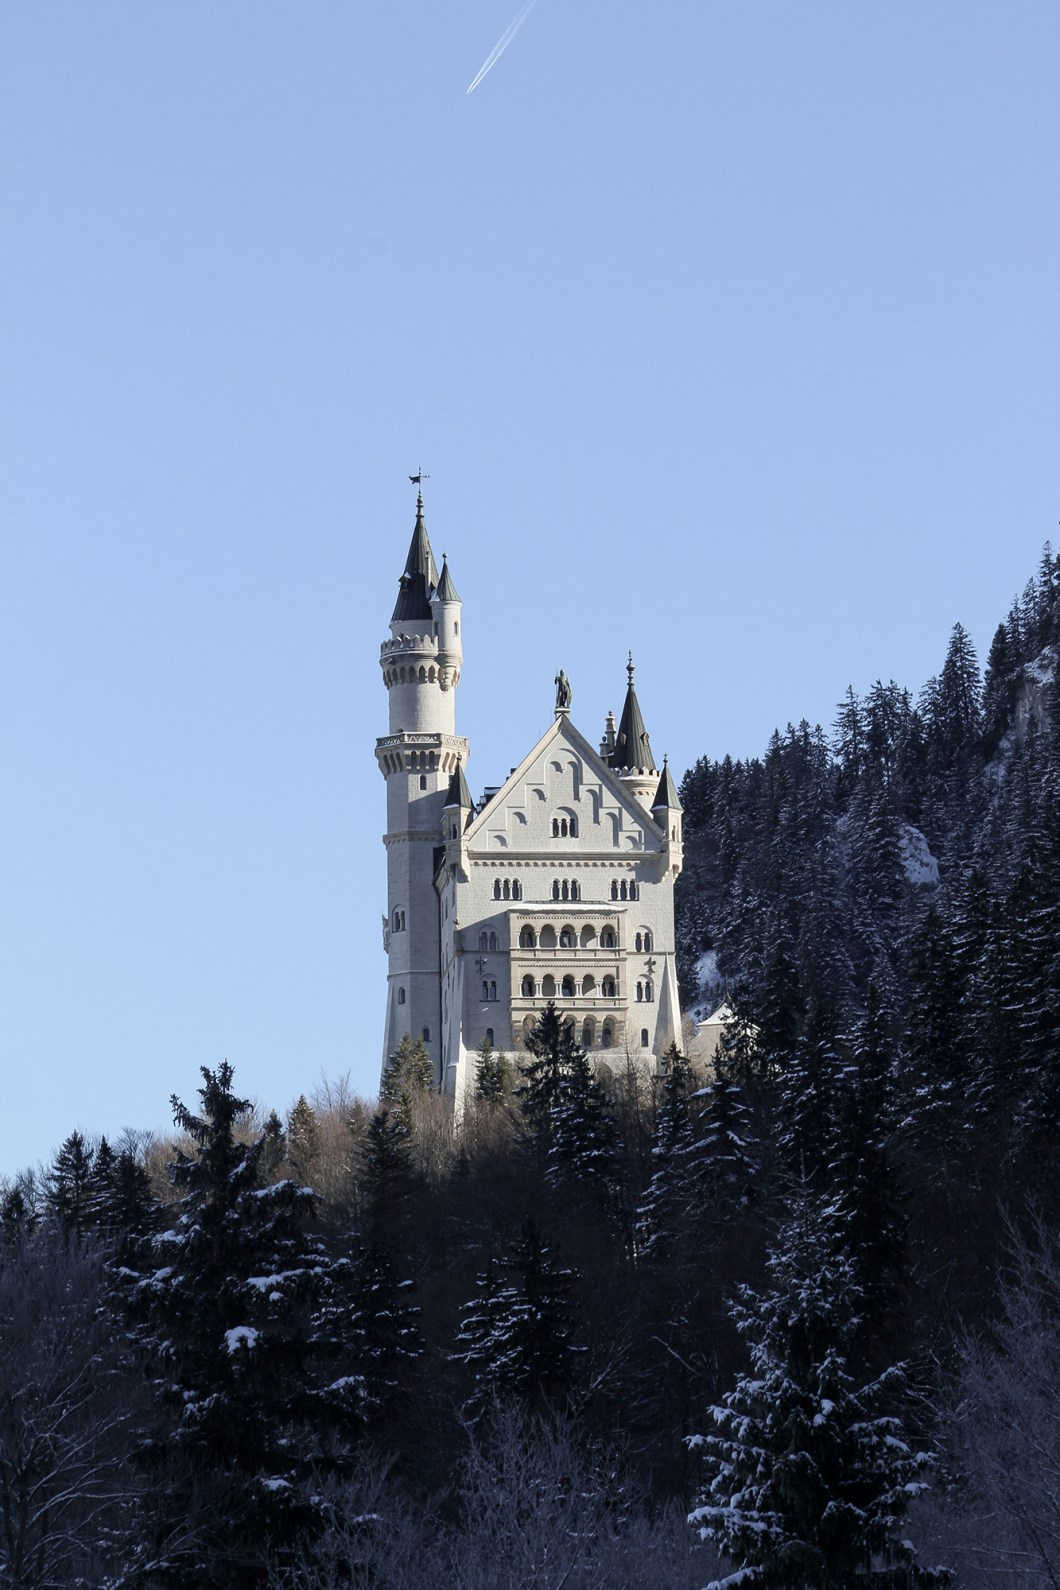 Neuschwanstein Germany | How Far From Home